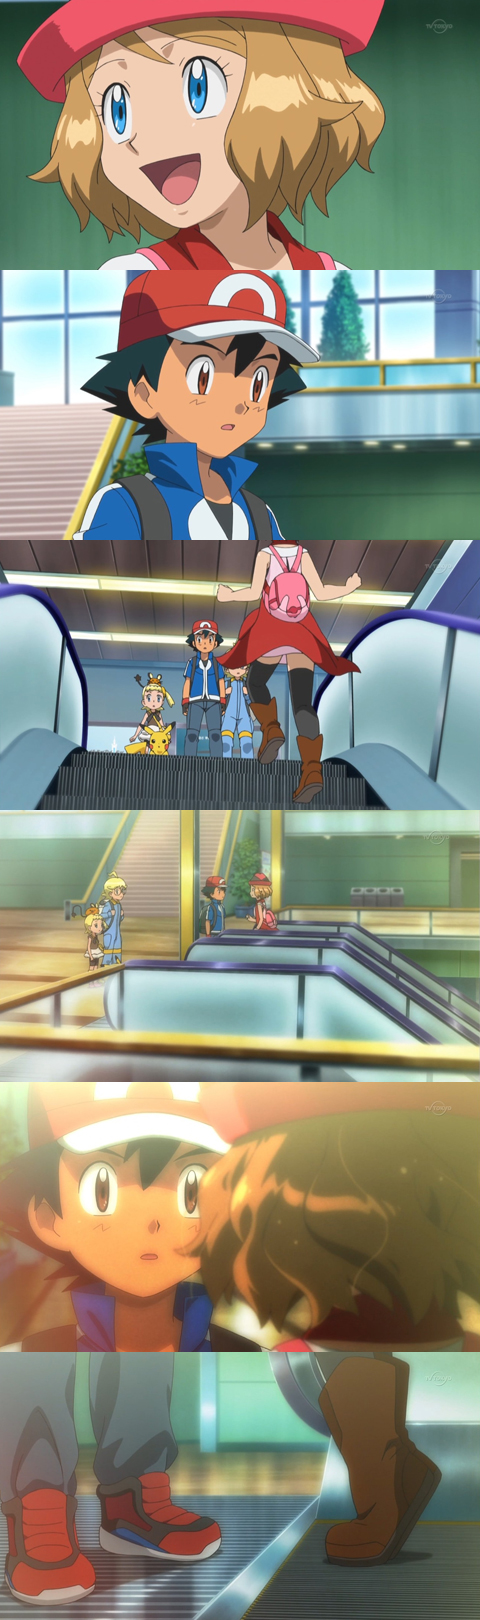 pokemon-xy-16102822.jpg